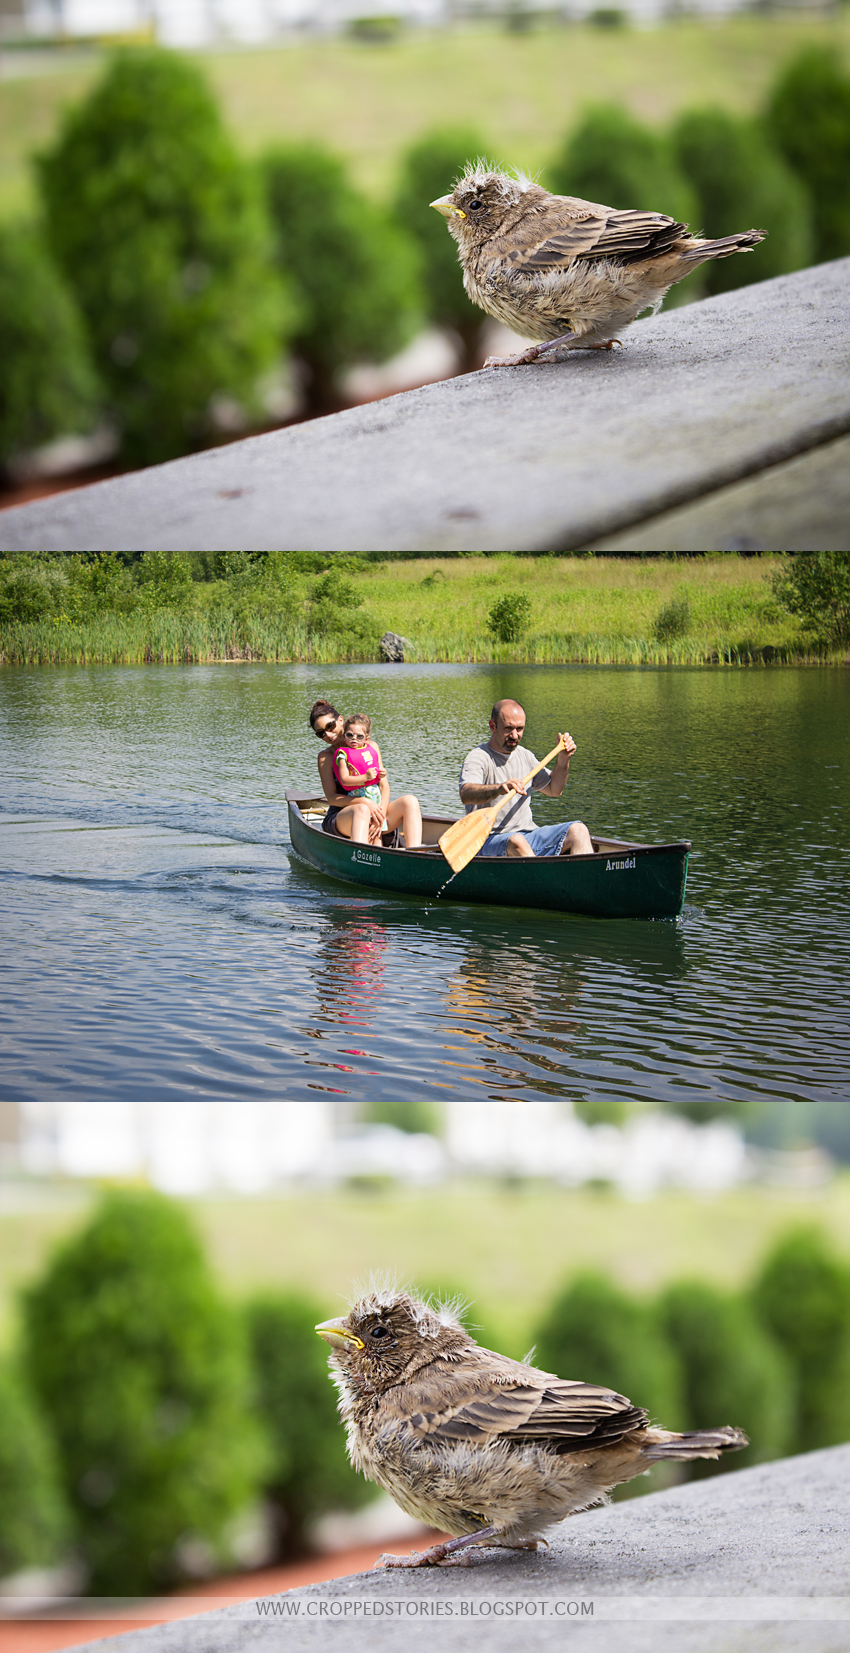 BABY BIRD and CANOE RIDE COLLAGE